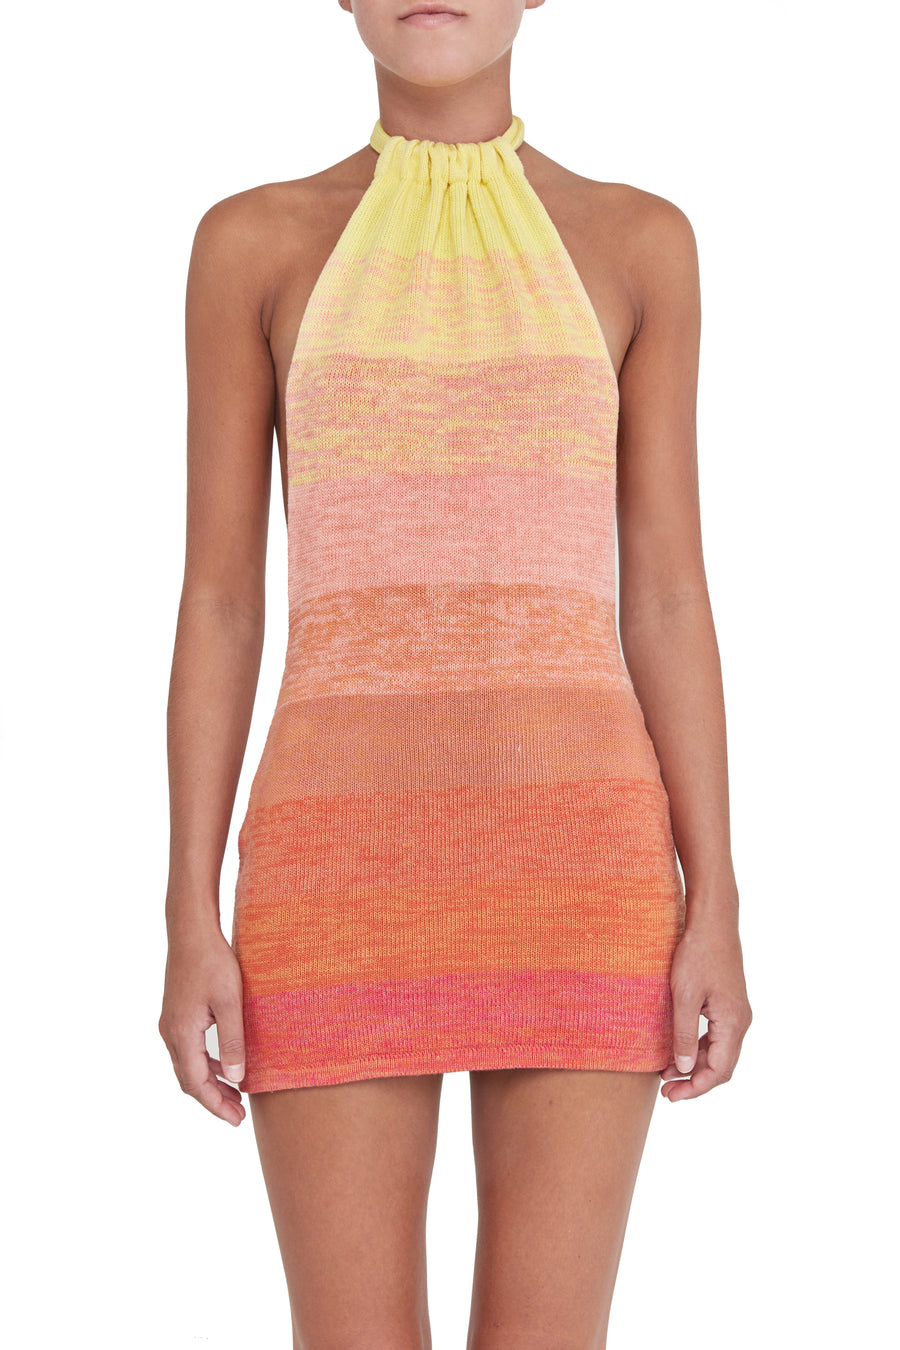 BOUNTY dress - sunset